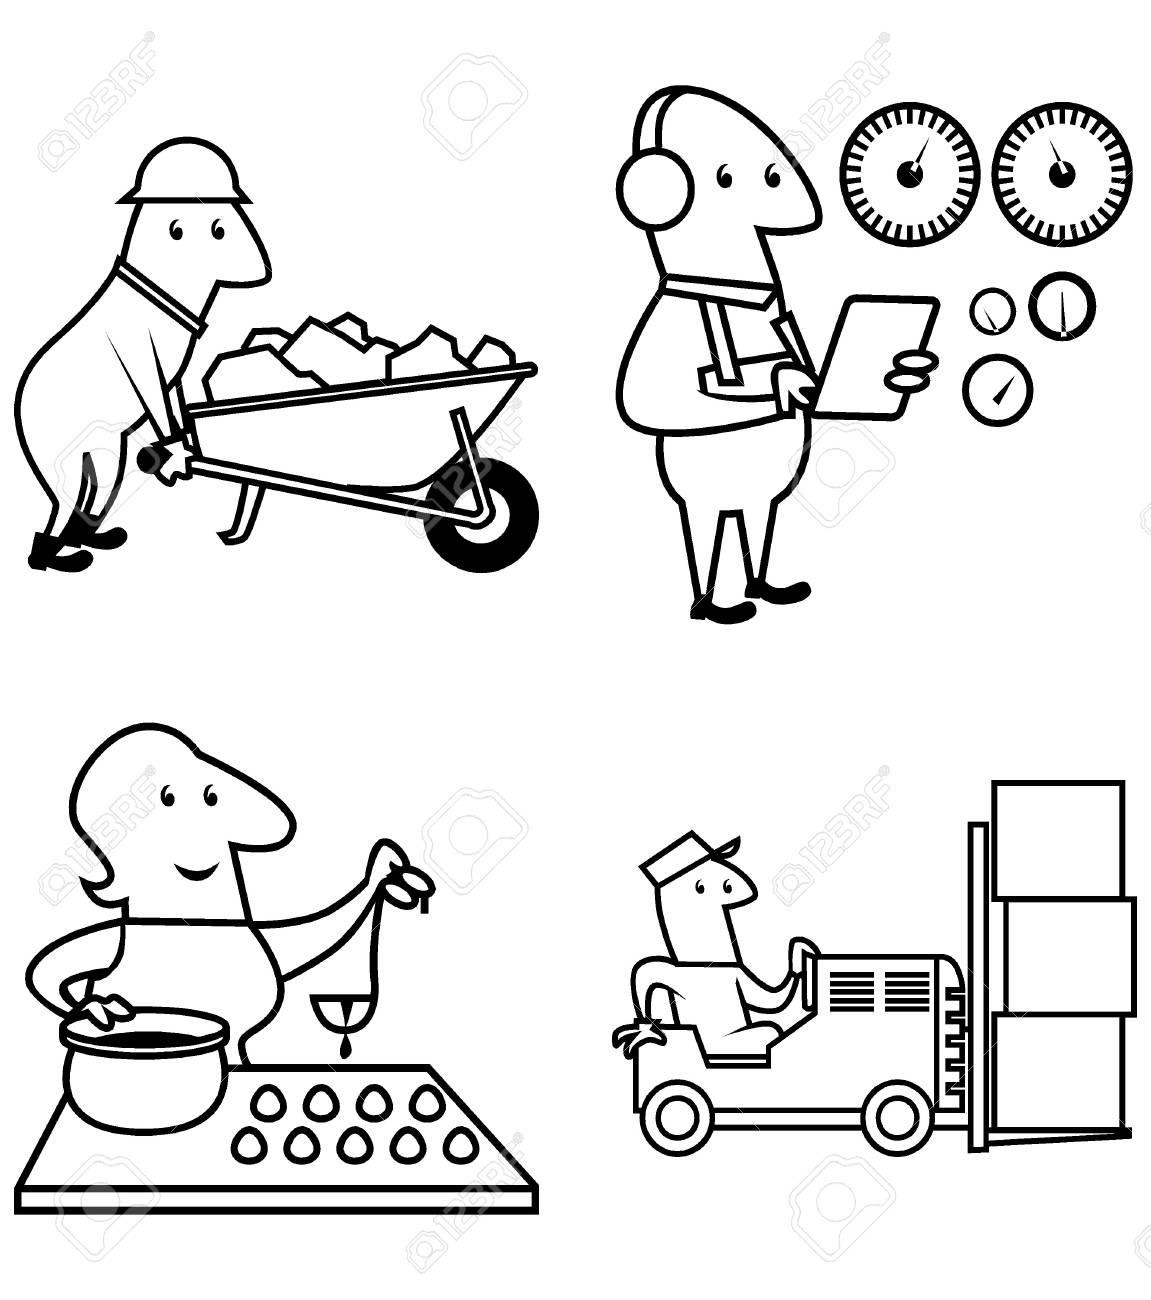 1151x1300 Collection People Work Profession, To Symbols, Professional